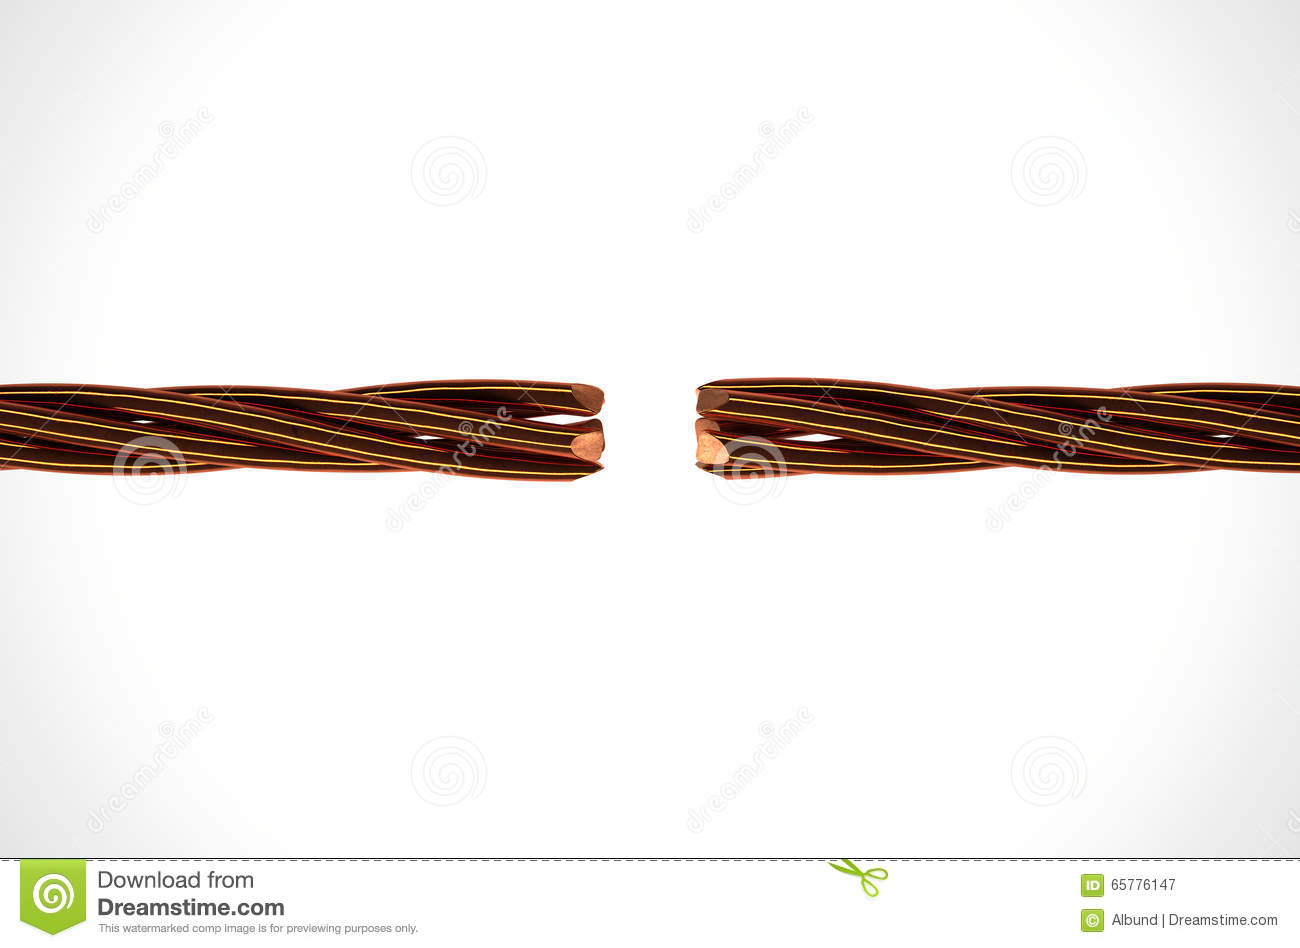 Copper Wire Strands Disconnected Stock Image - Image of disconnected ...